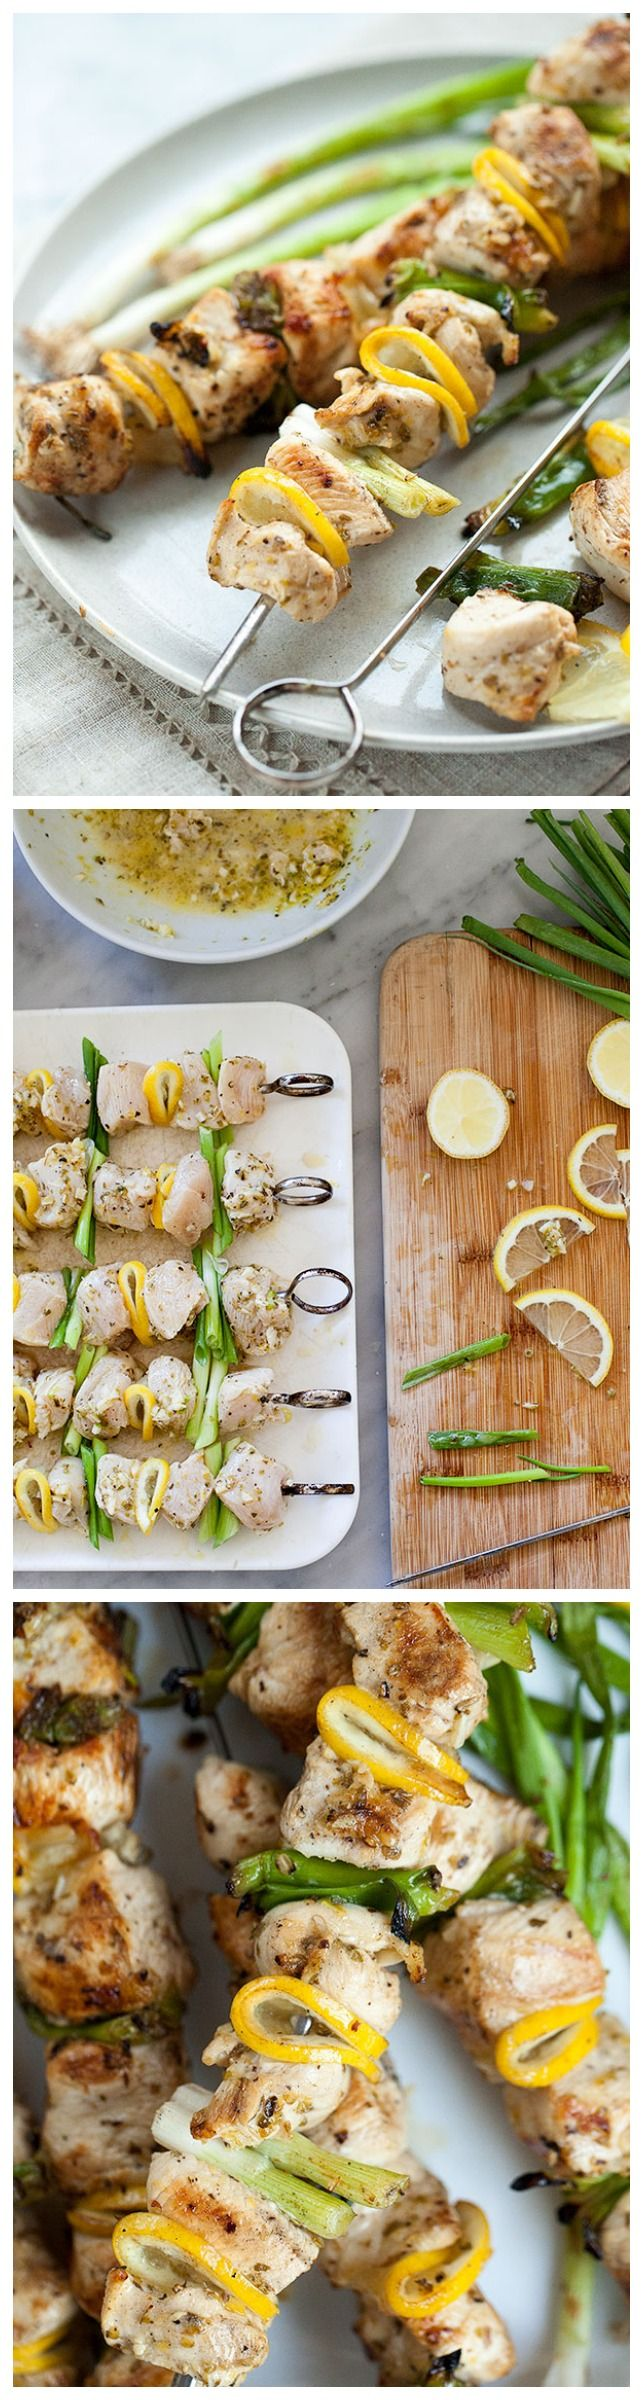 Grilled Lemon Chicken Skewers are my favorite skinny chicken dinner | foodiecrush.com #mediterraneandiet #recipe